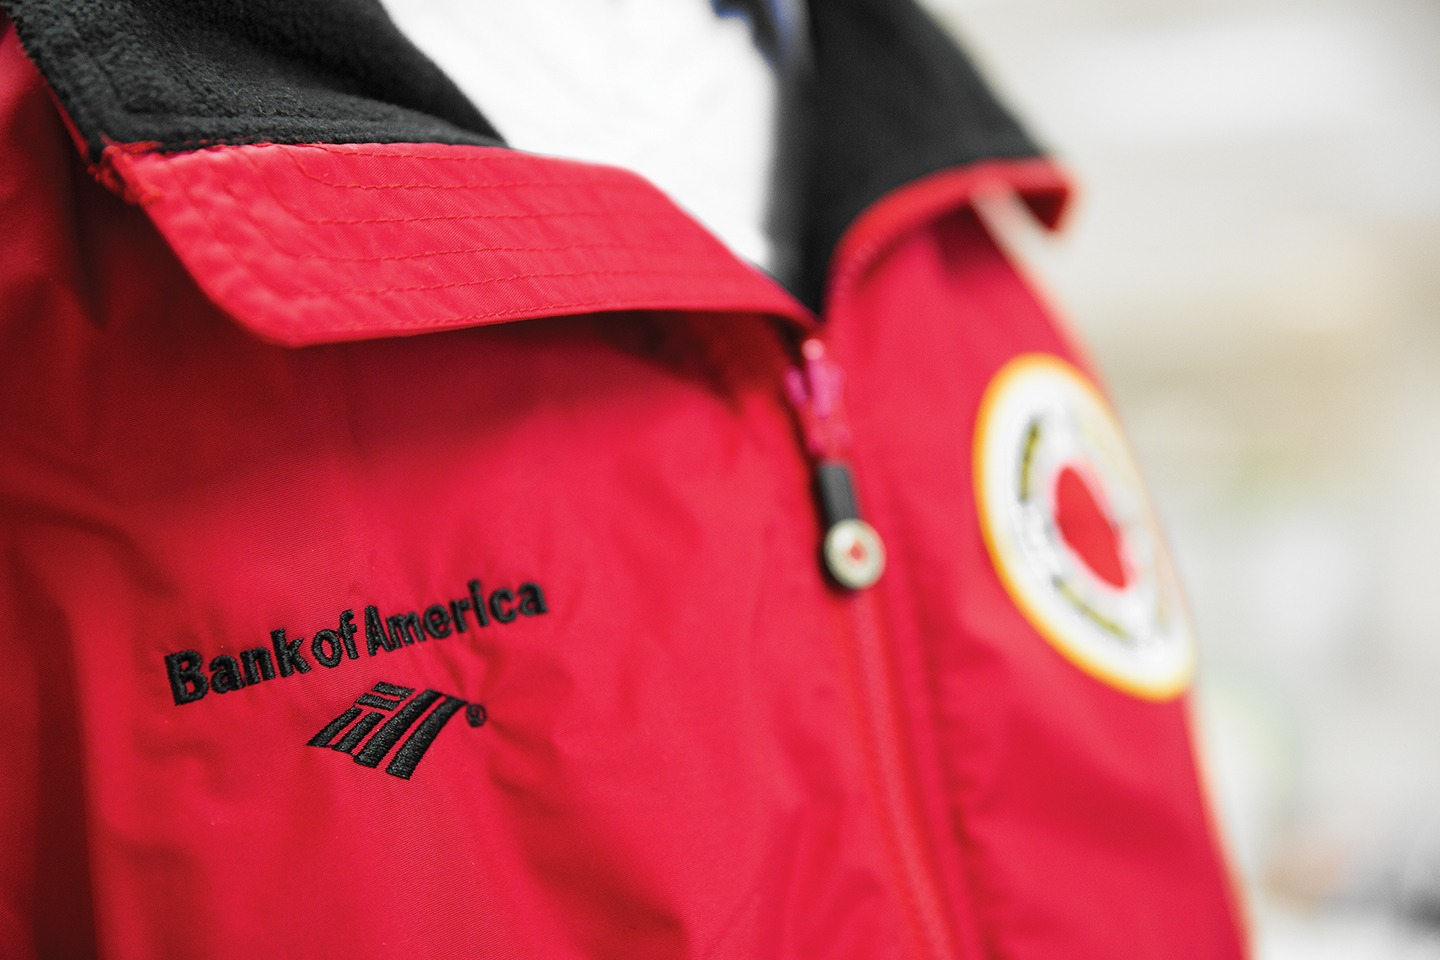 Red jacket with Bank of America logo and City Year logo